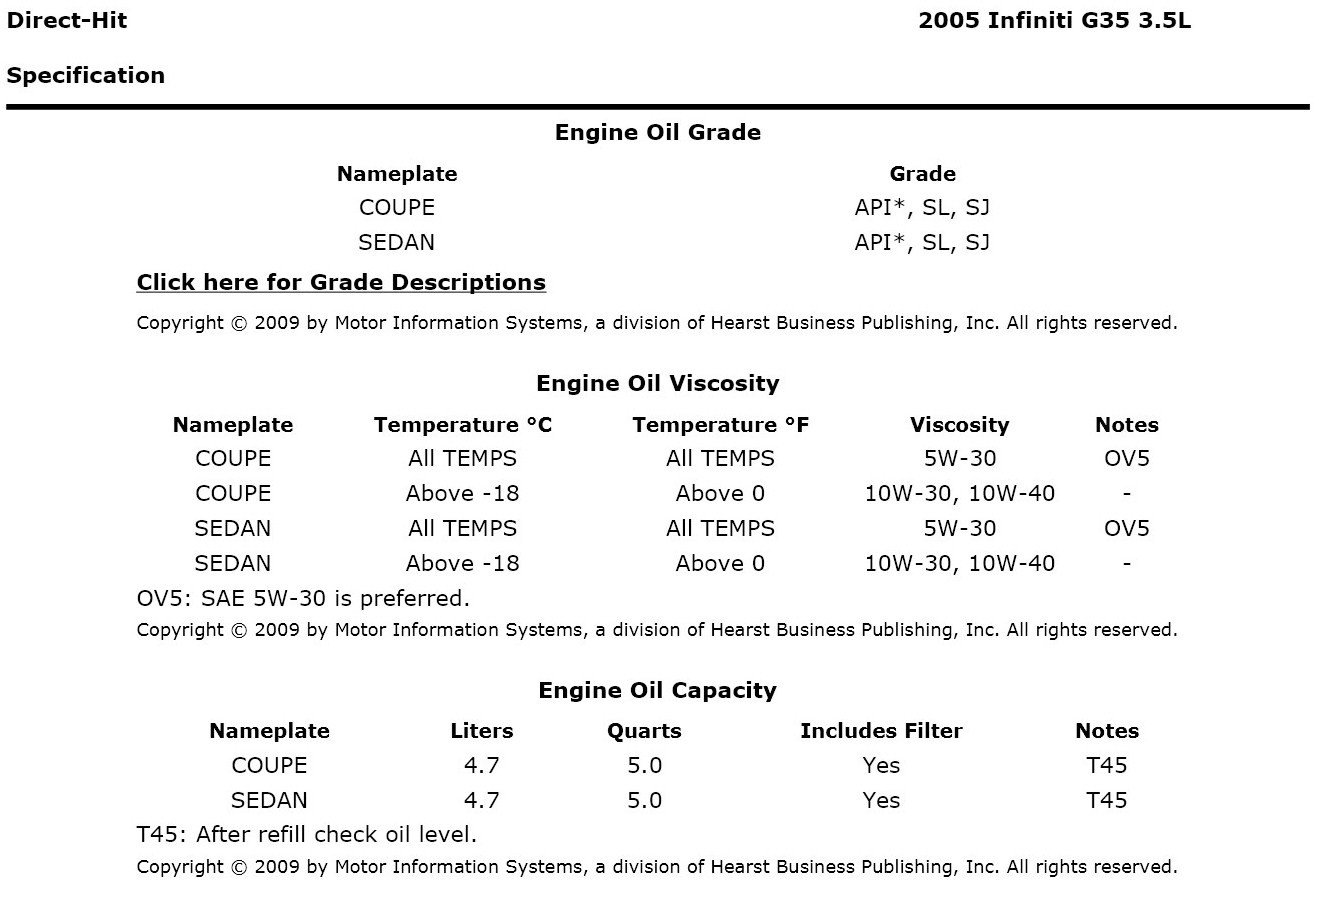 What Engine Oil In Recommended For 05 Infiniti G35 Is The Audio Wiring Diagram 2003 Sedan Manufacture Recommends Changing Coolant Every 60k Miles Here A Chart Your Specifications Let Me Know If You Have Questions Thanks